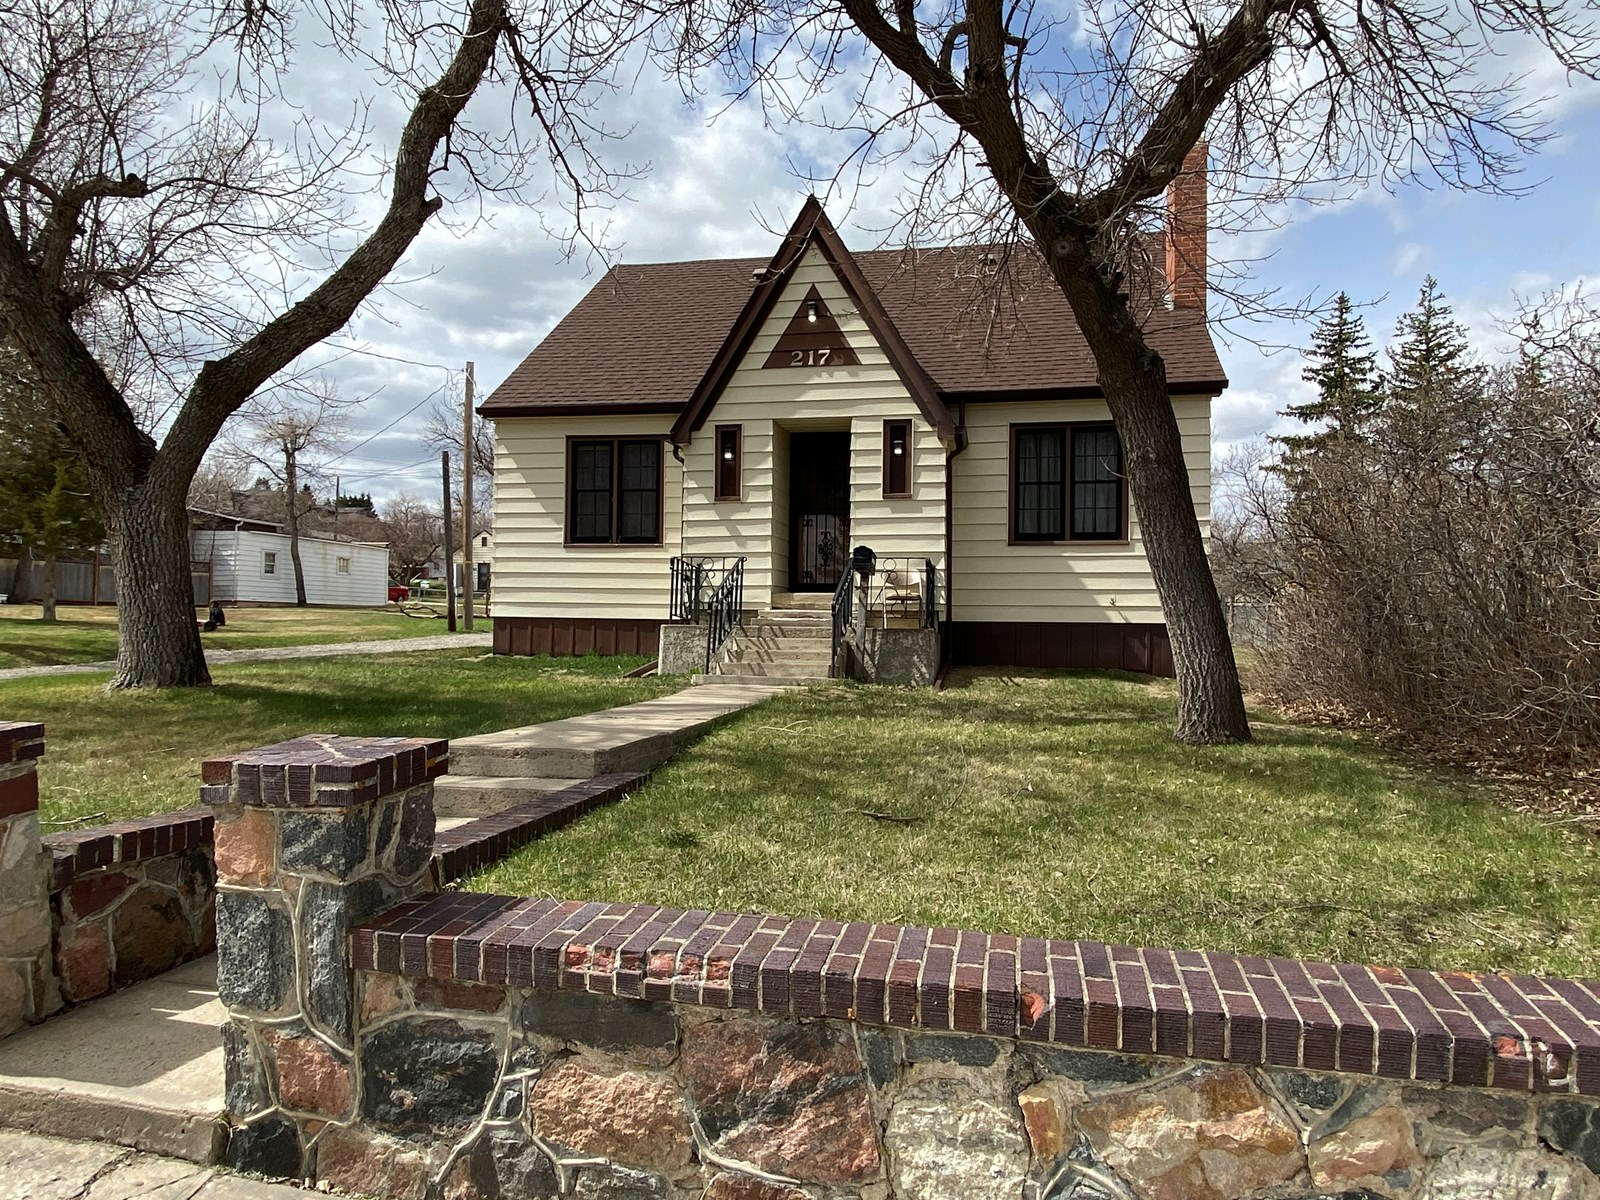 Home for sale in Shelby MT